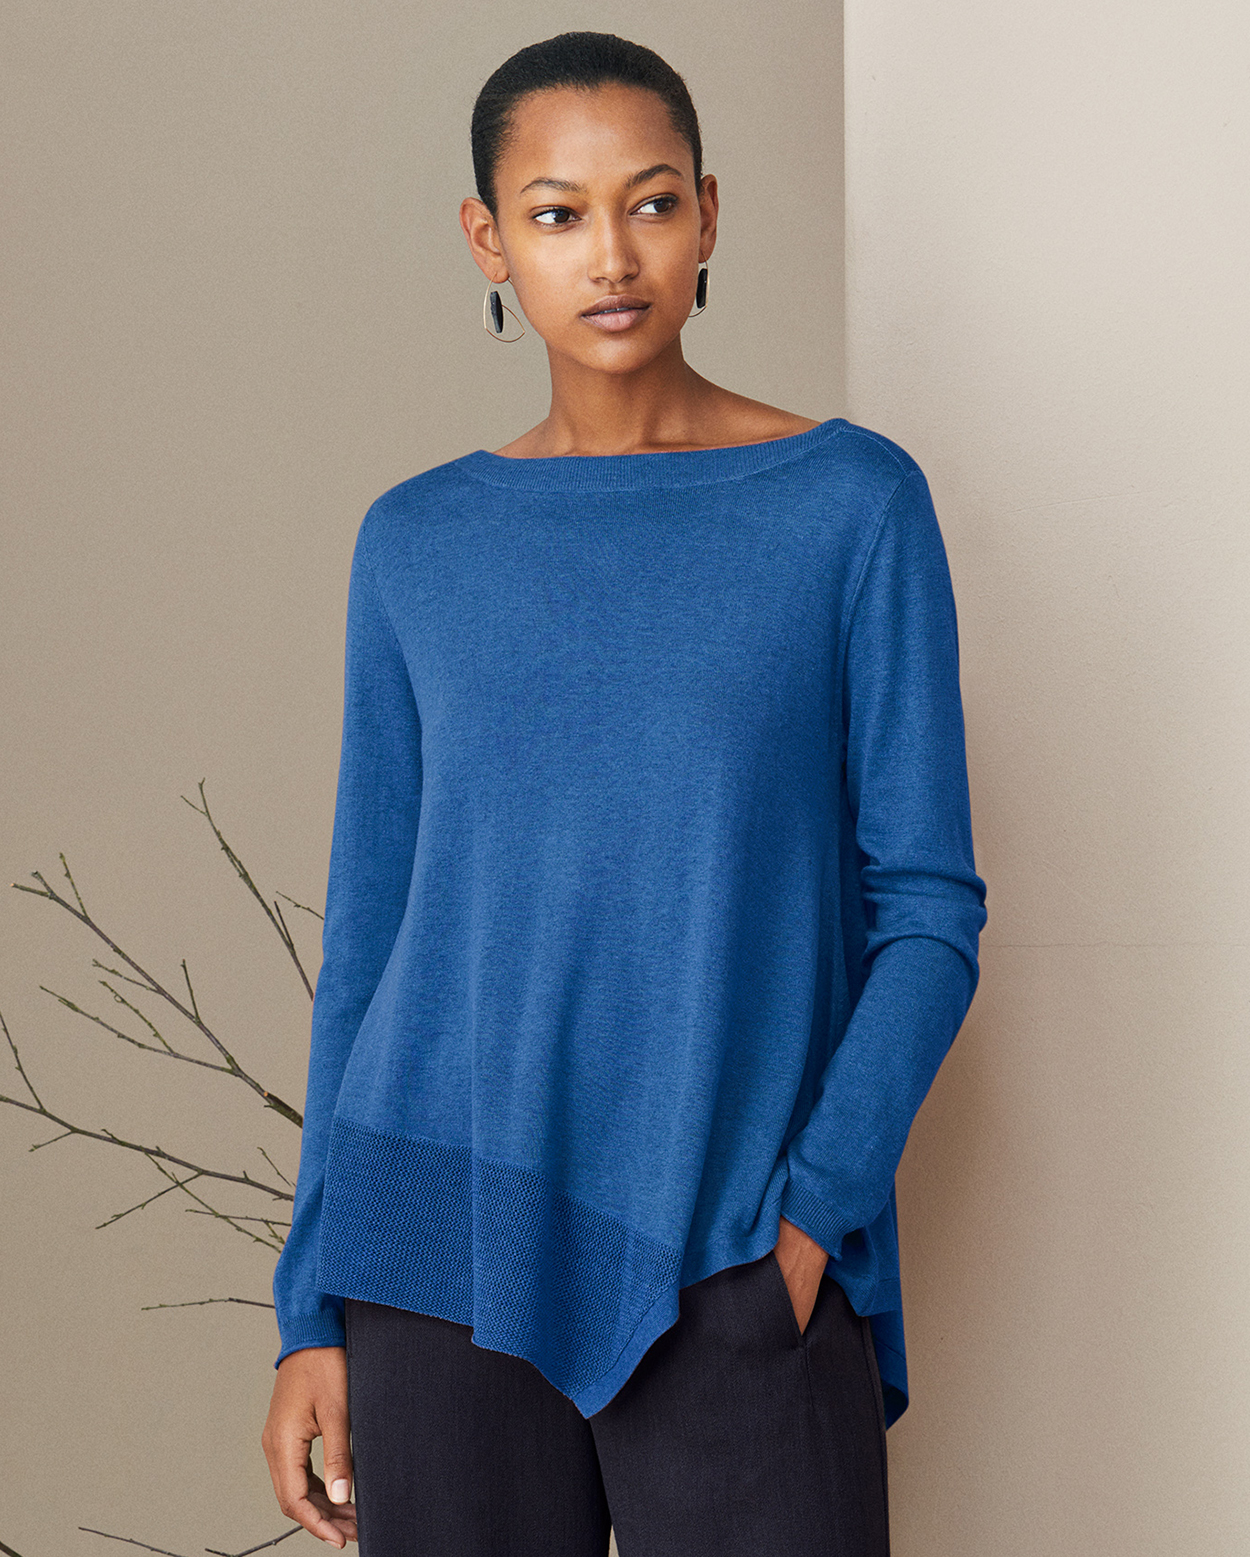 Poetry - Search Results for silk cashmere sweater